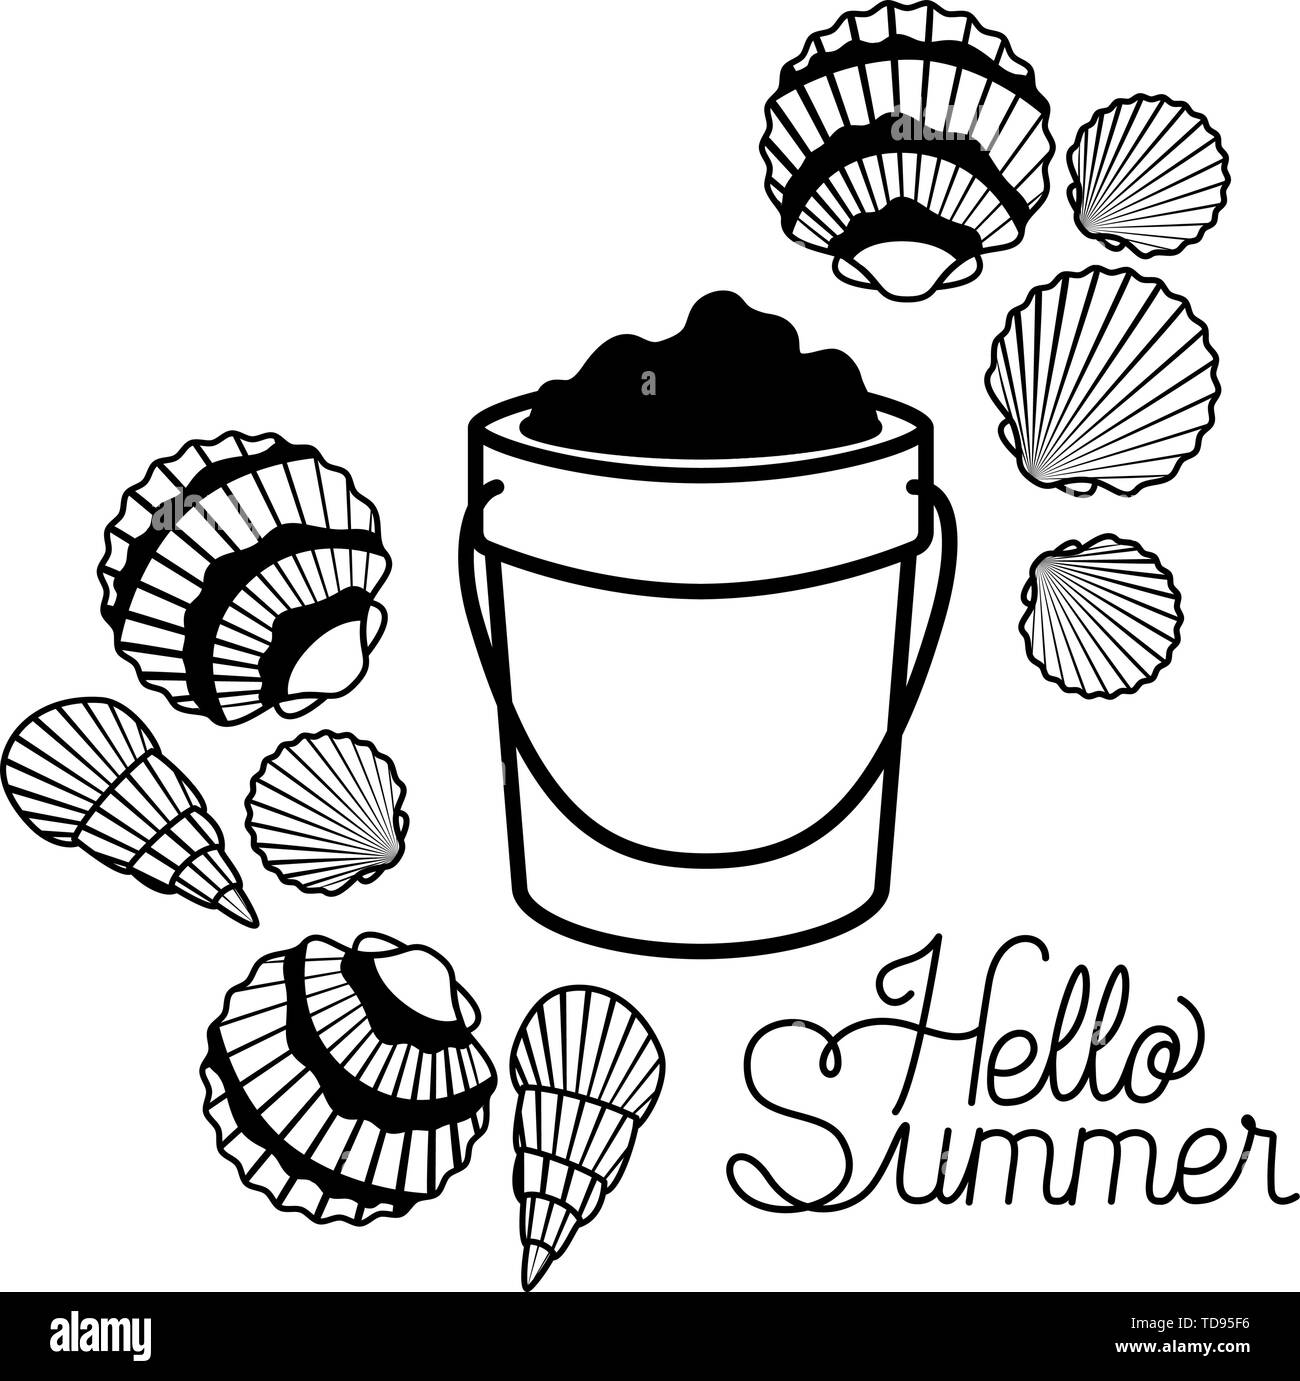 hello summer label with white background - Stock Image